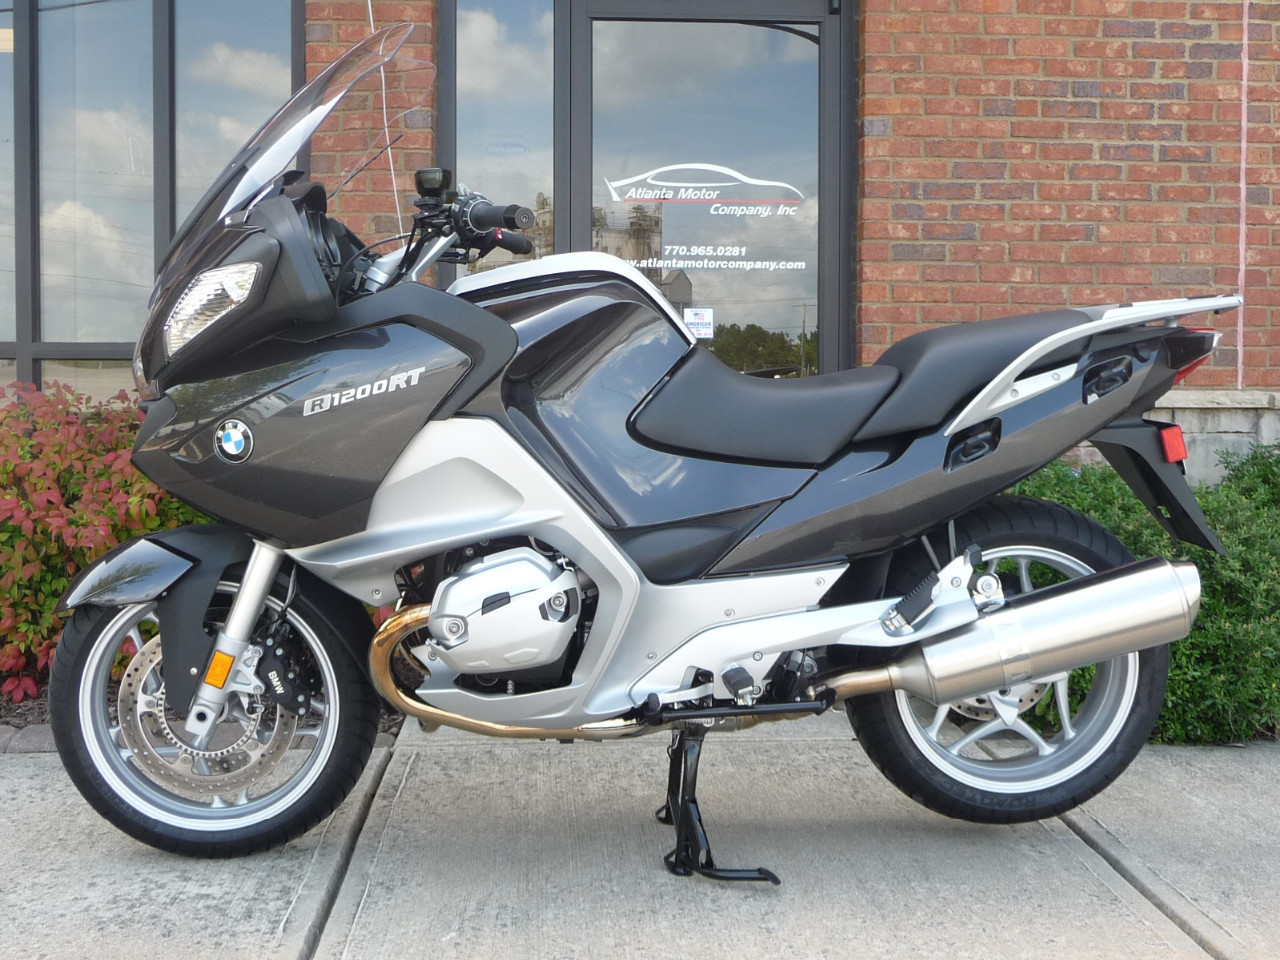 2011 bmw r 1200 rt sport touring motorcycle from flowery branch ga. Cars Review. Best American Auto & Cars Review